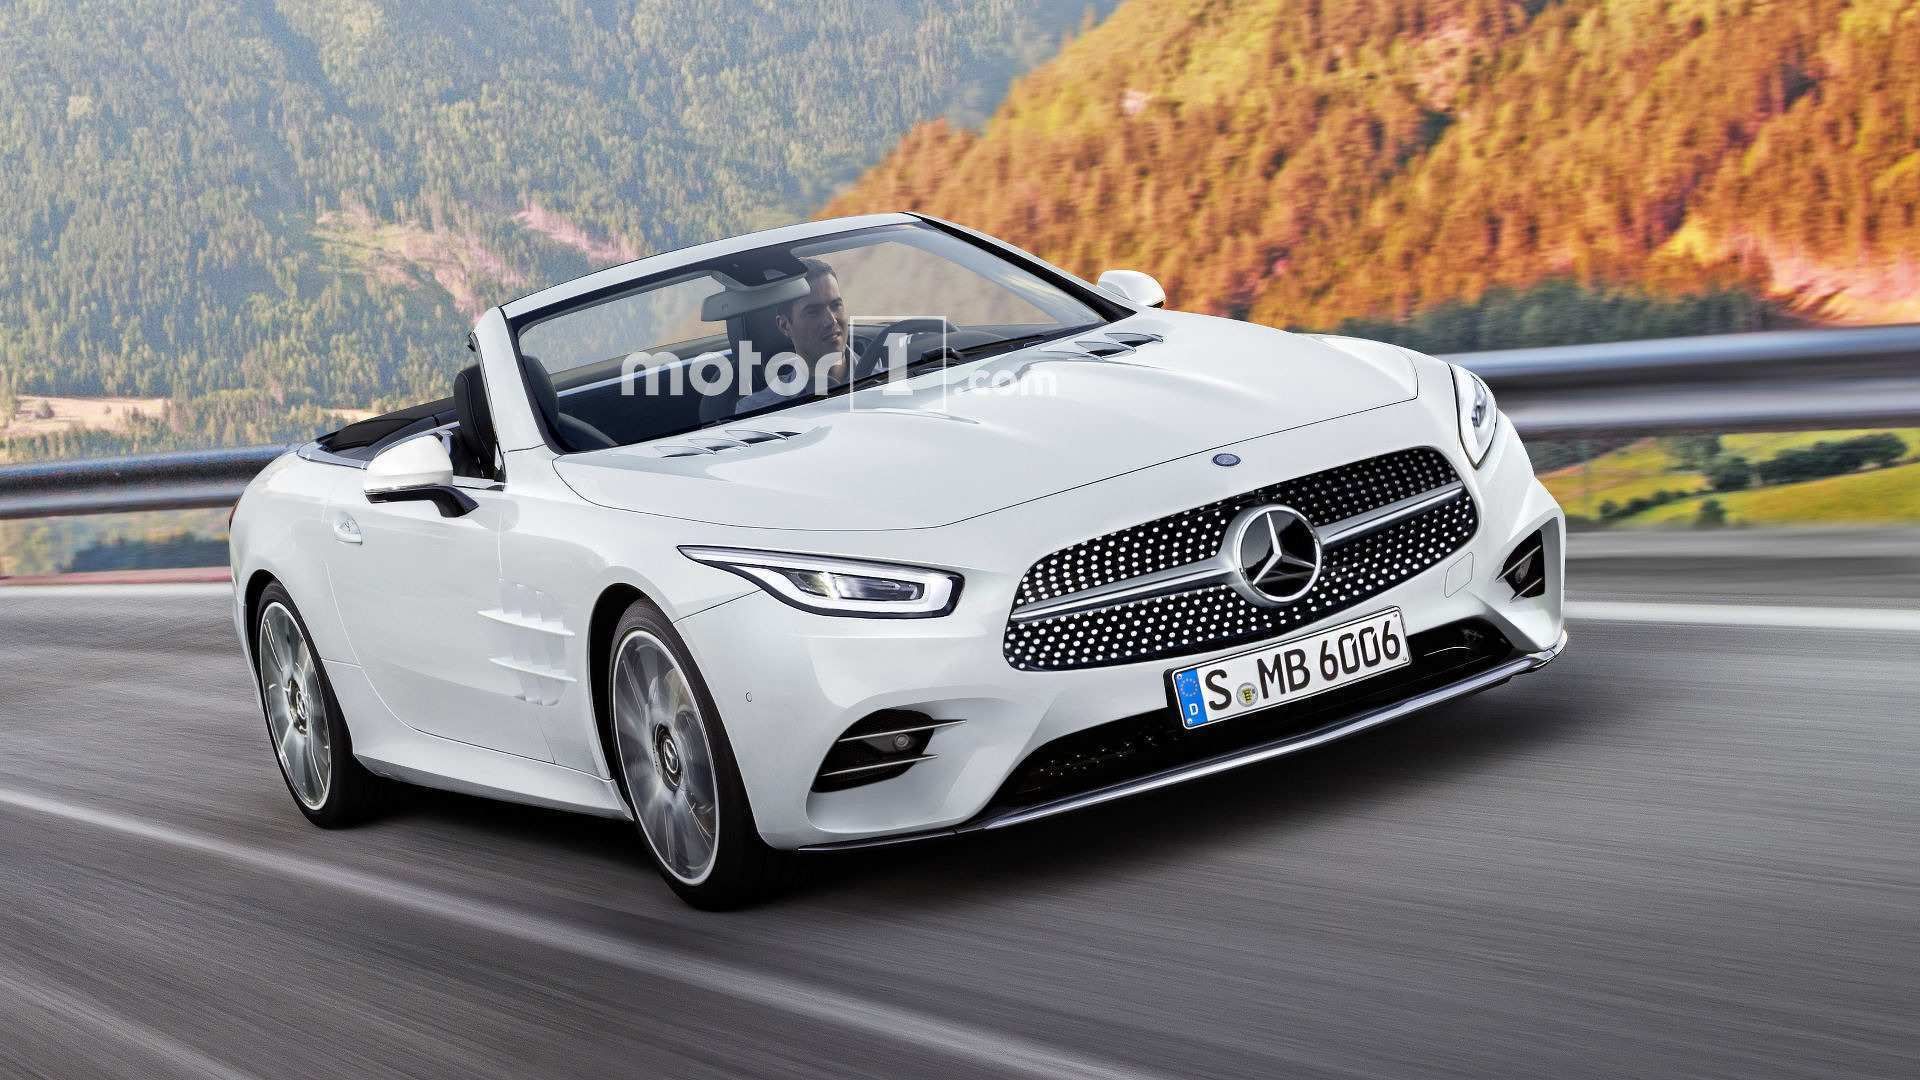 97 Best Review Best Sl550 Mercedes 2019 Redesign Rumors with Best Sl550 Mercedes 2019 Redesign